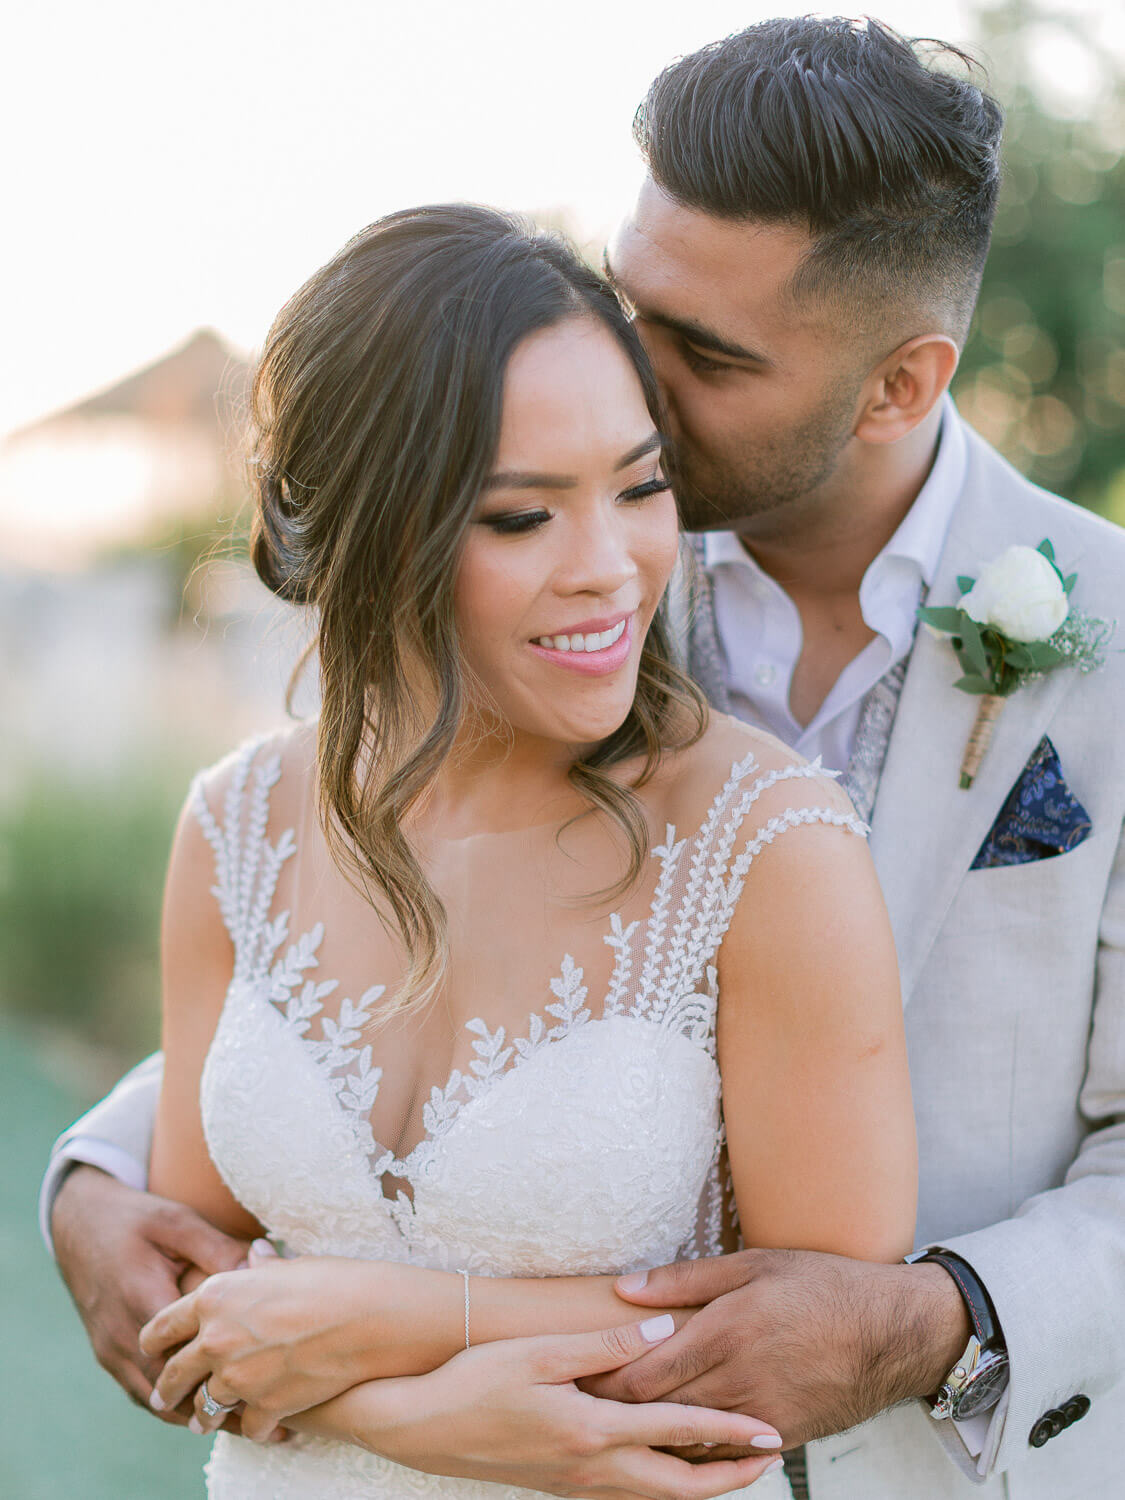 bride and groom's sweet embrace at a destination wedding in the Algarve by Portugal Wedding Photographer